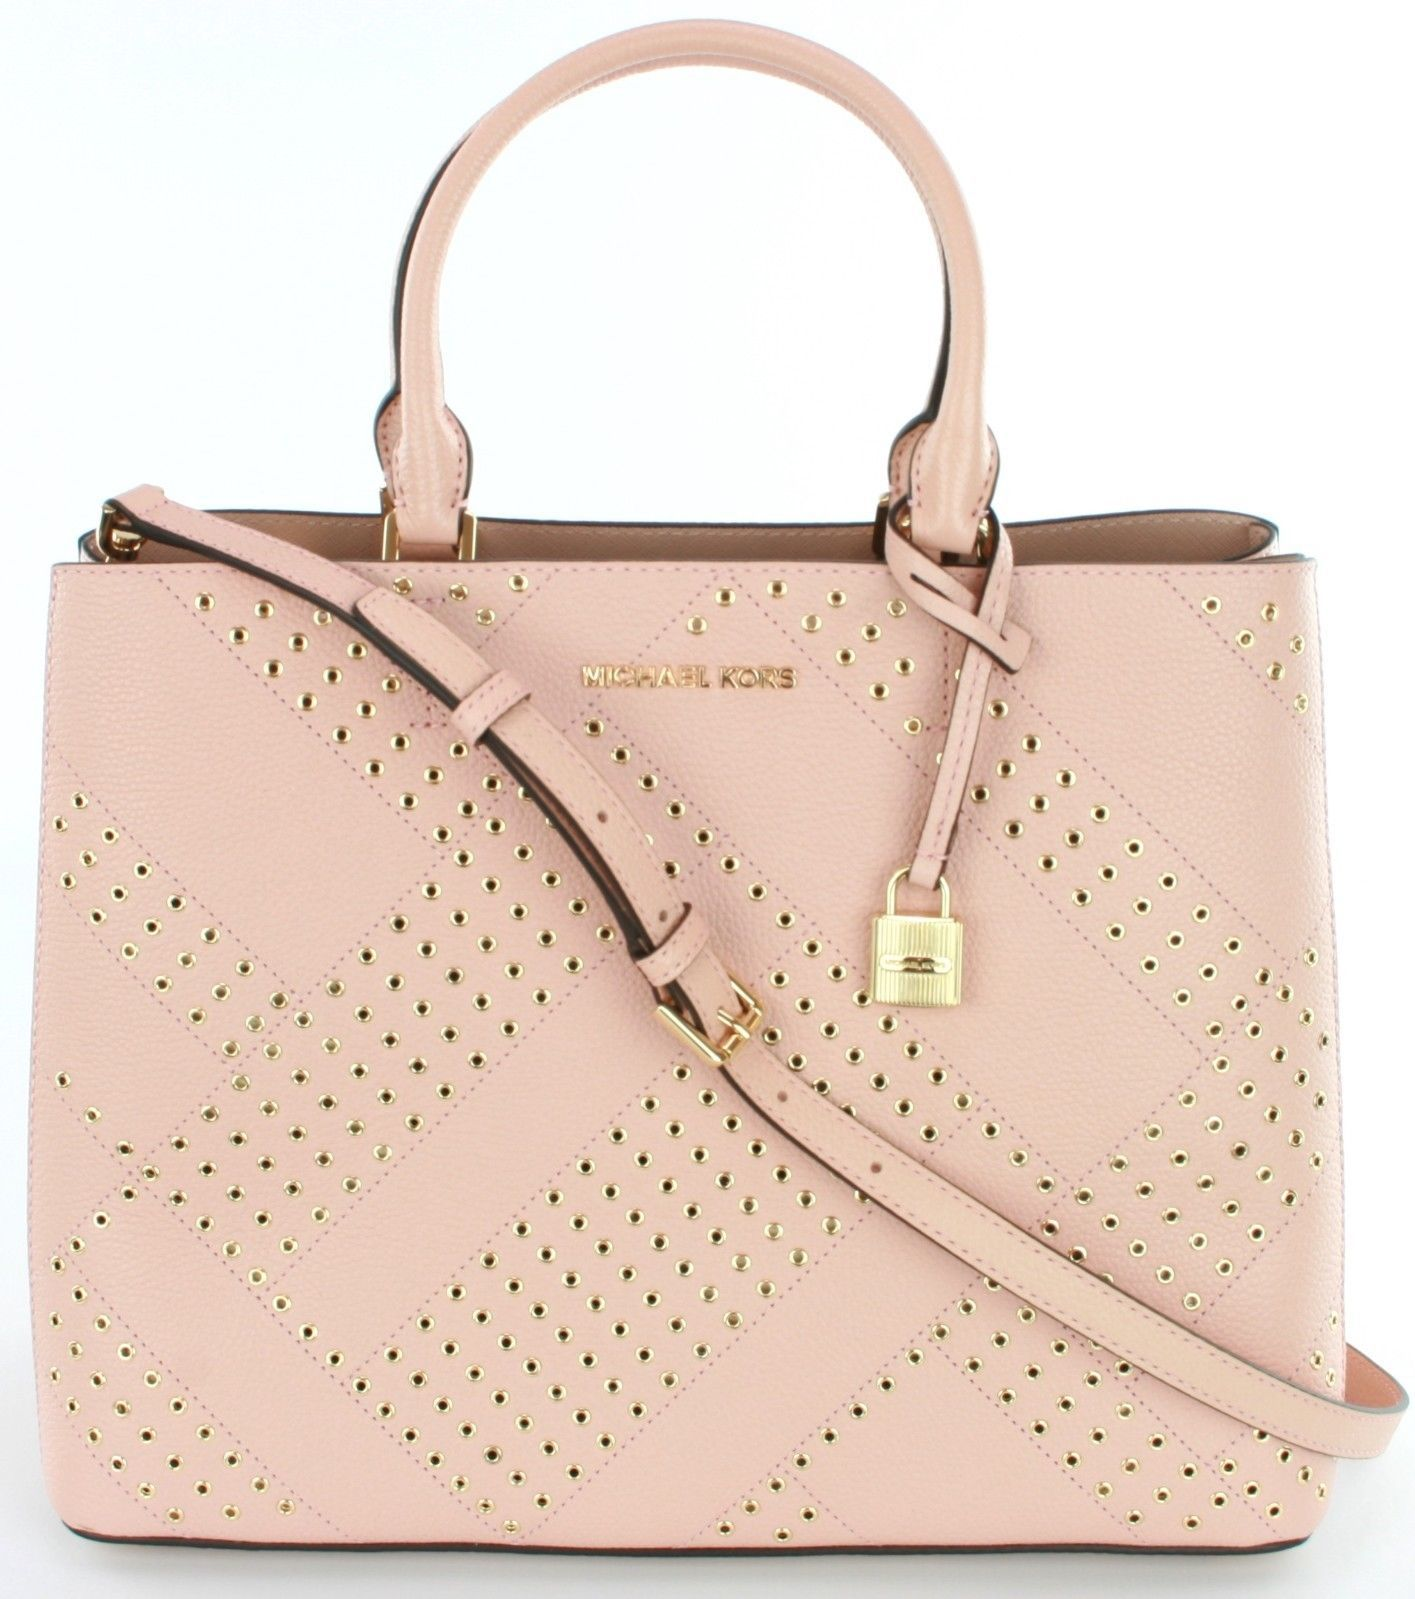 0021c1c6c228 Michael Kors Adele Pastel Pink Leather and 50 similar items. 57